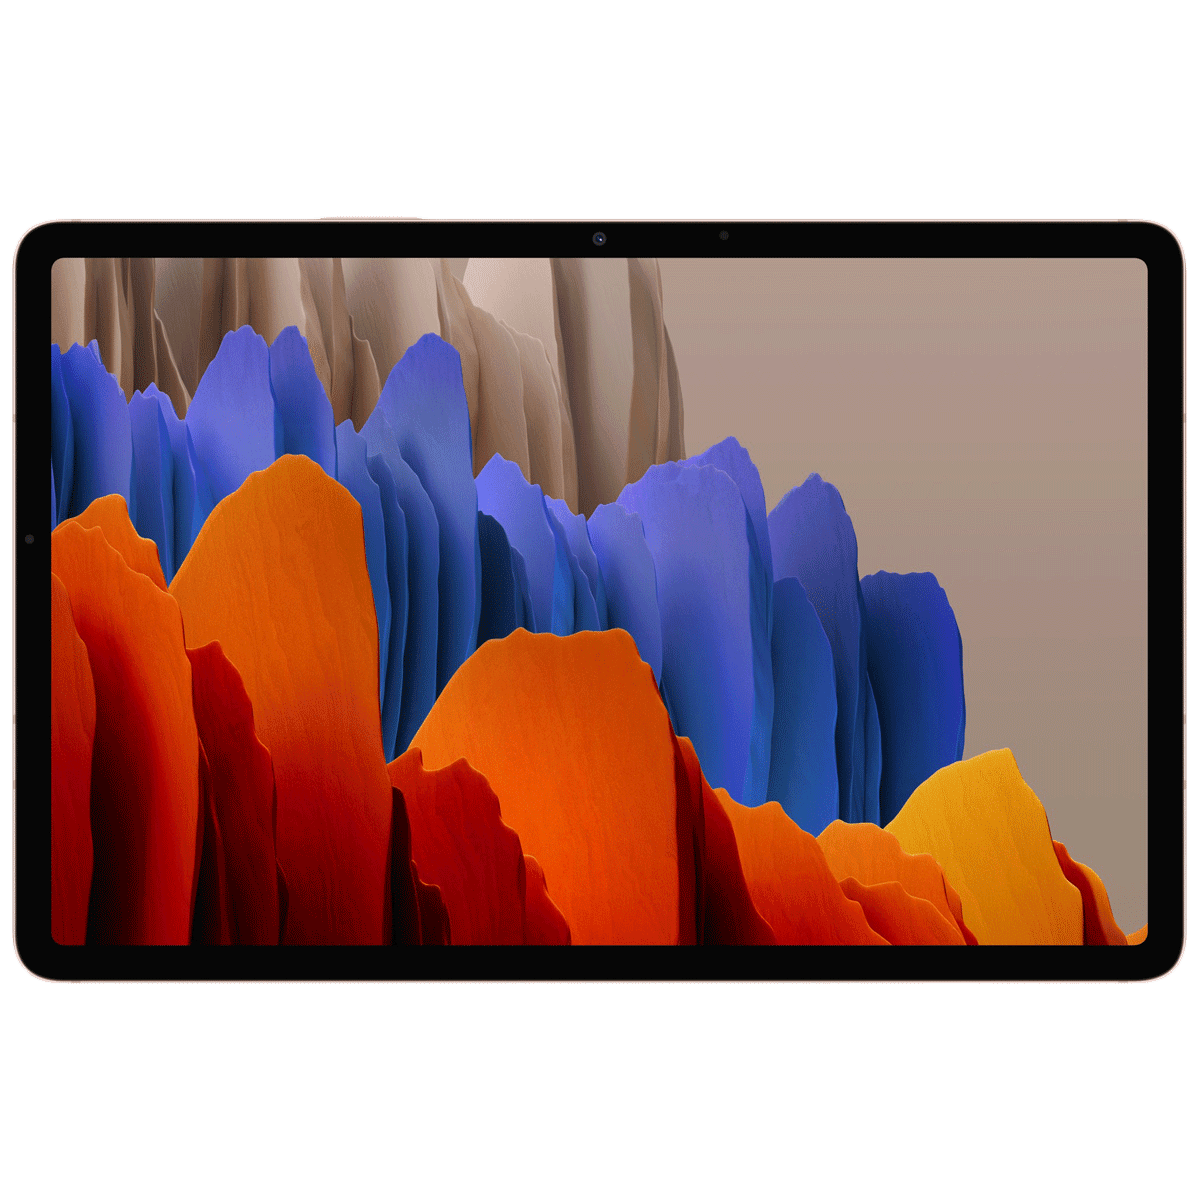 Samsung Galaxy Tab S7 Plus WiFi Android Tablet (Android 10, Qualcomm Snapdragon 865 Plus, 31.50 cm (12.4 Inches), 6GB RAM, 128GB ROM, SM-T970NZNAINU, Mystic Bronze)